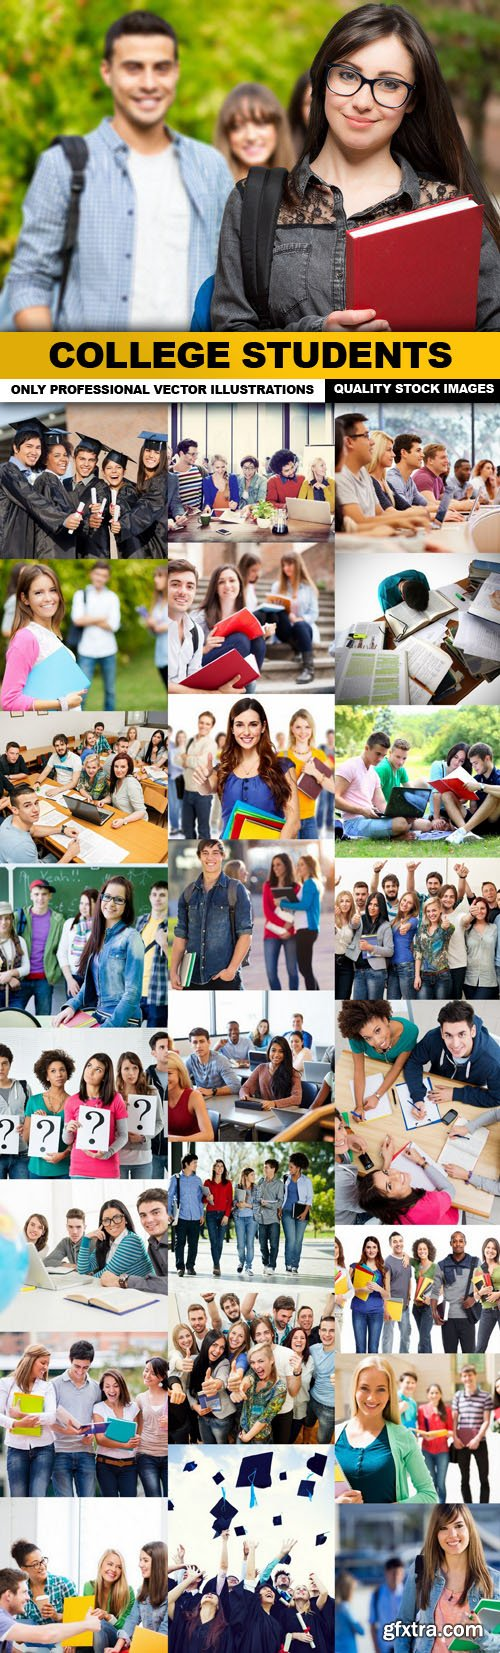 College Students - 25 HQ Images